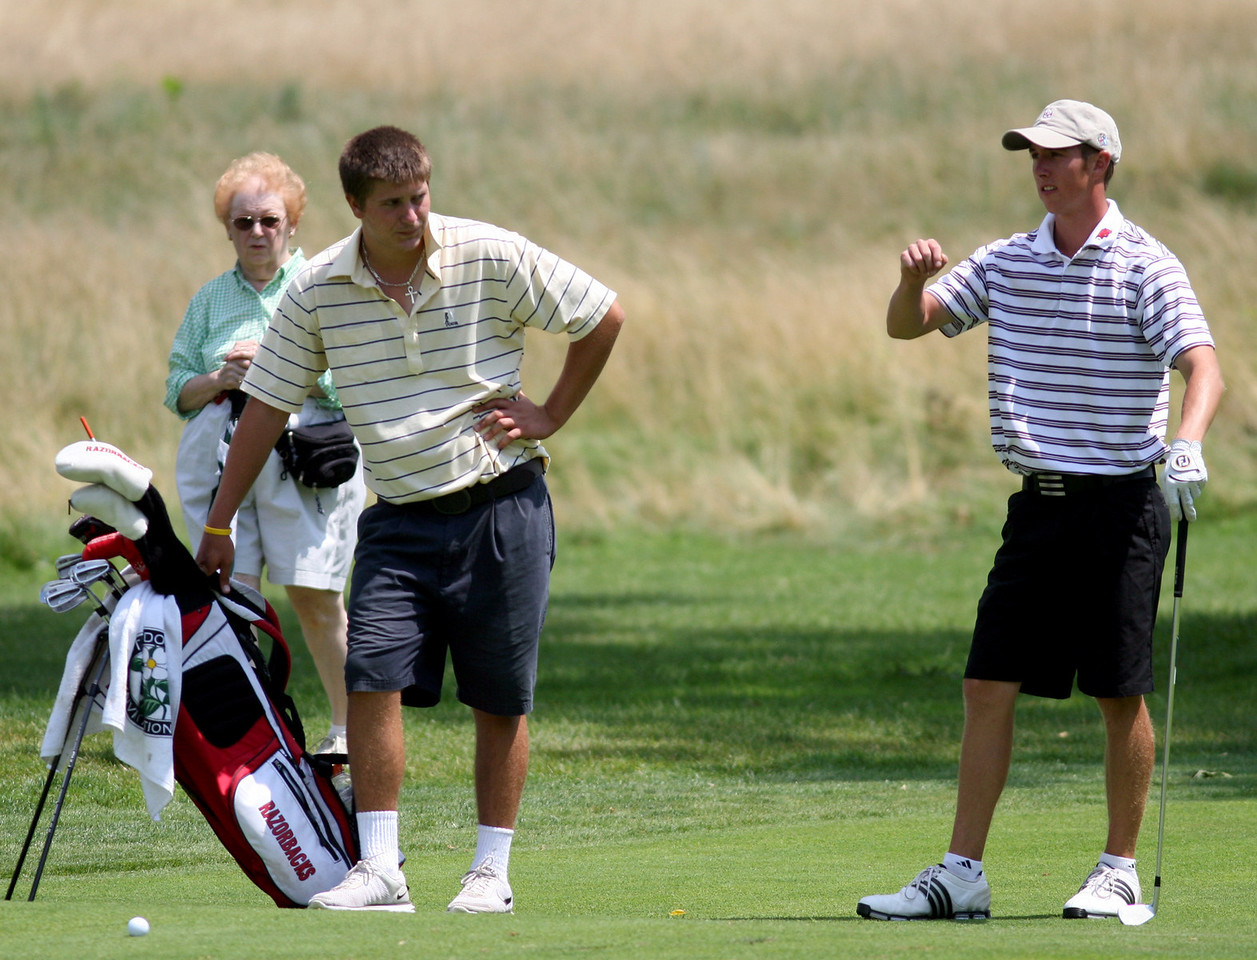 E.L. Hubbard Photography<br /> Ethan Tracy, right, from Hilliard, with his caddie, David Haley,  during the Ohio Amateur at Moraine Country Club Friday, July 17, 2009.